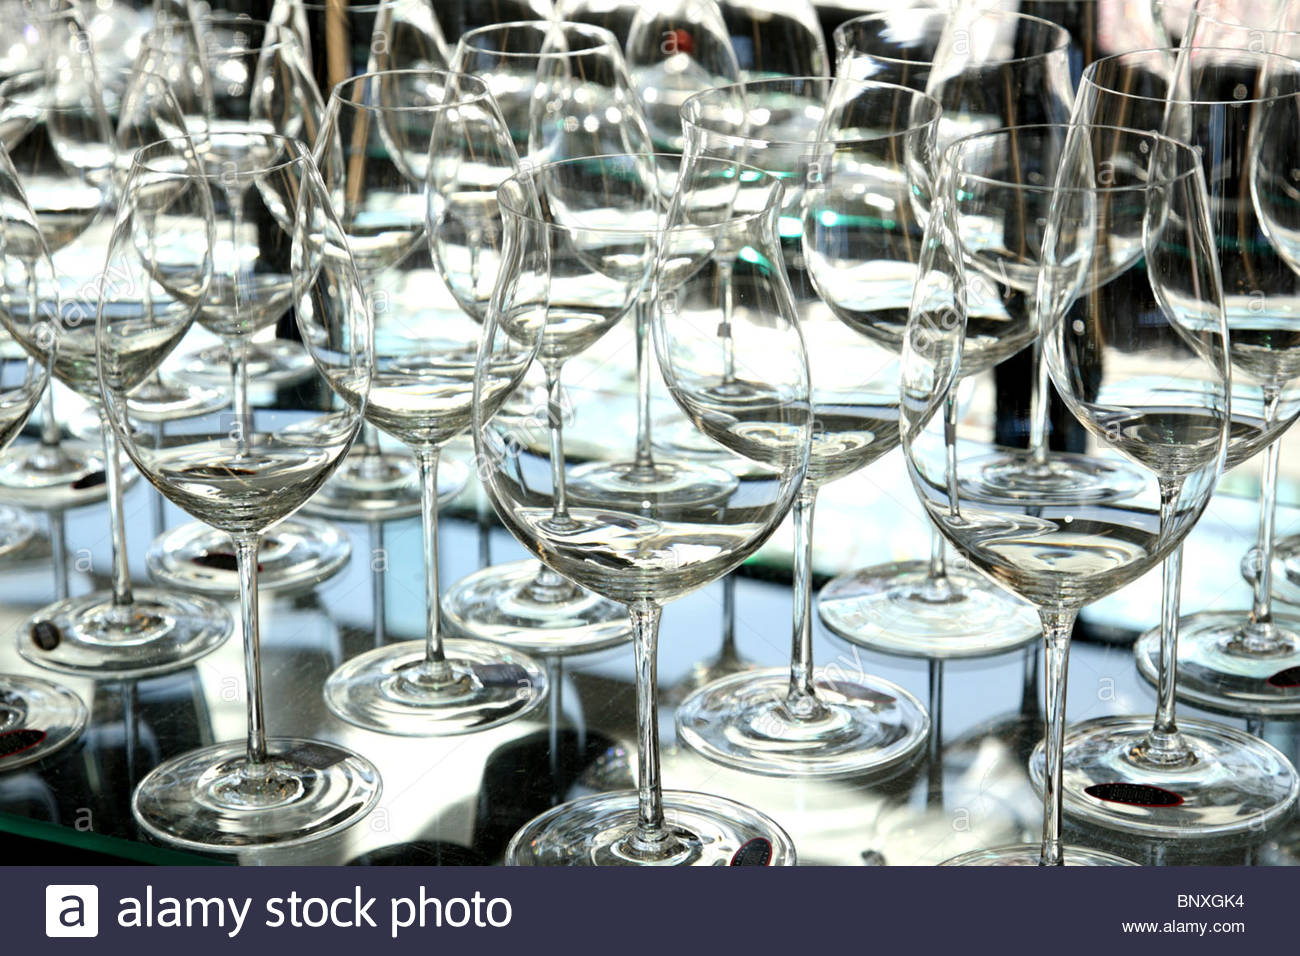 Exceptional Wine Glasses For Sale Part - 6: Crystal Wine Glasses Made By Riedel For Sale In Riedel Kufstein Shop.  Kufstein, Tyrol Province, Austria